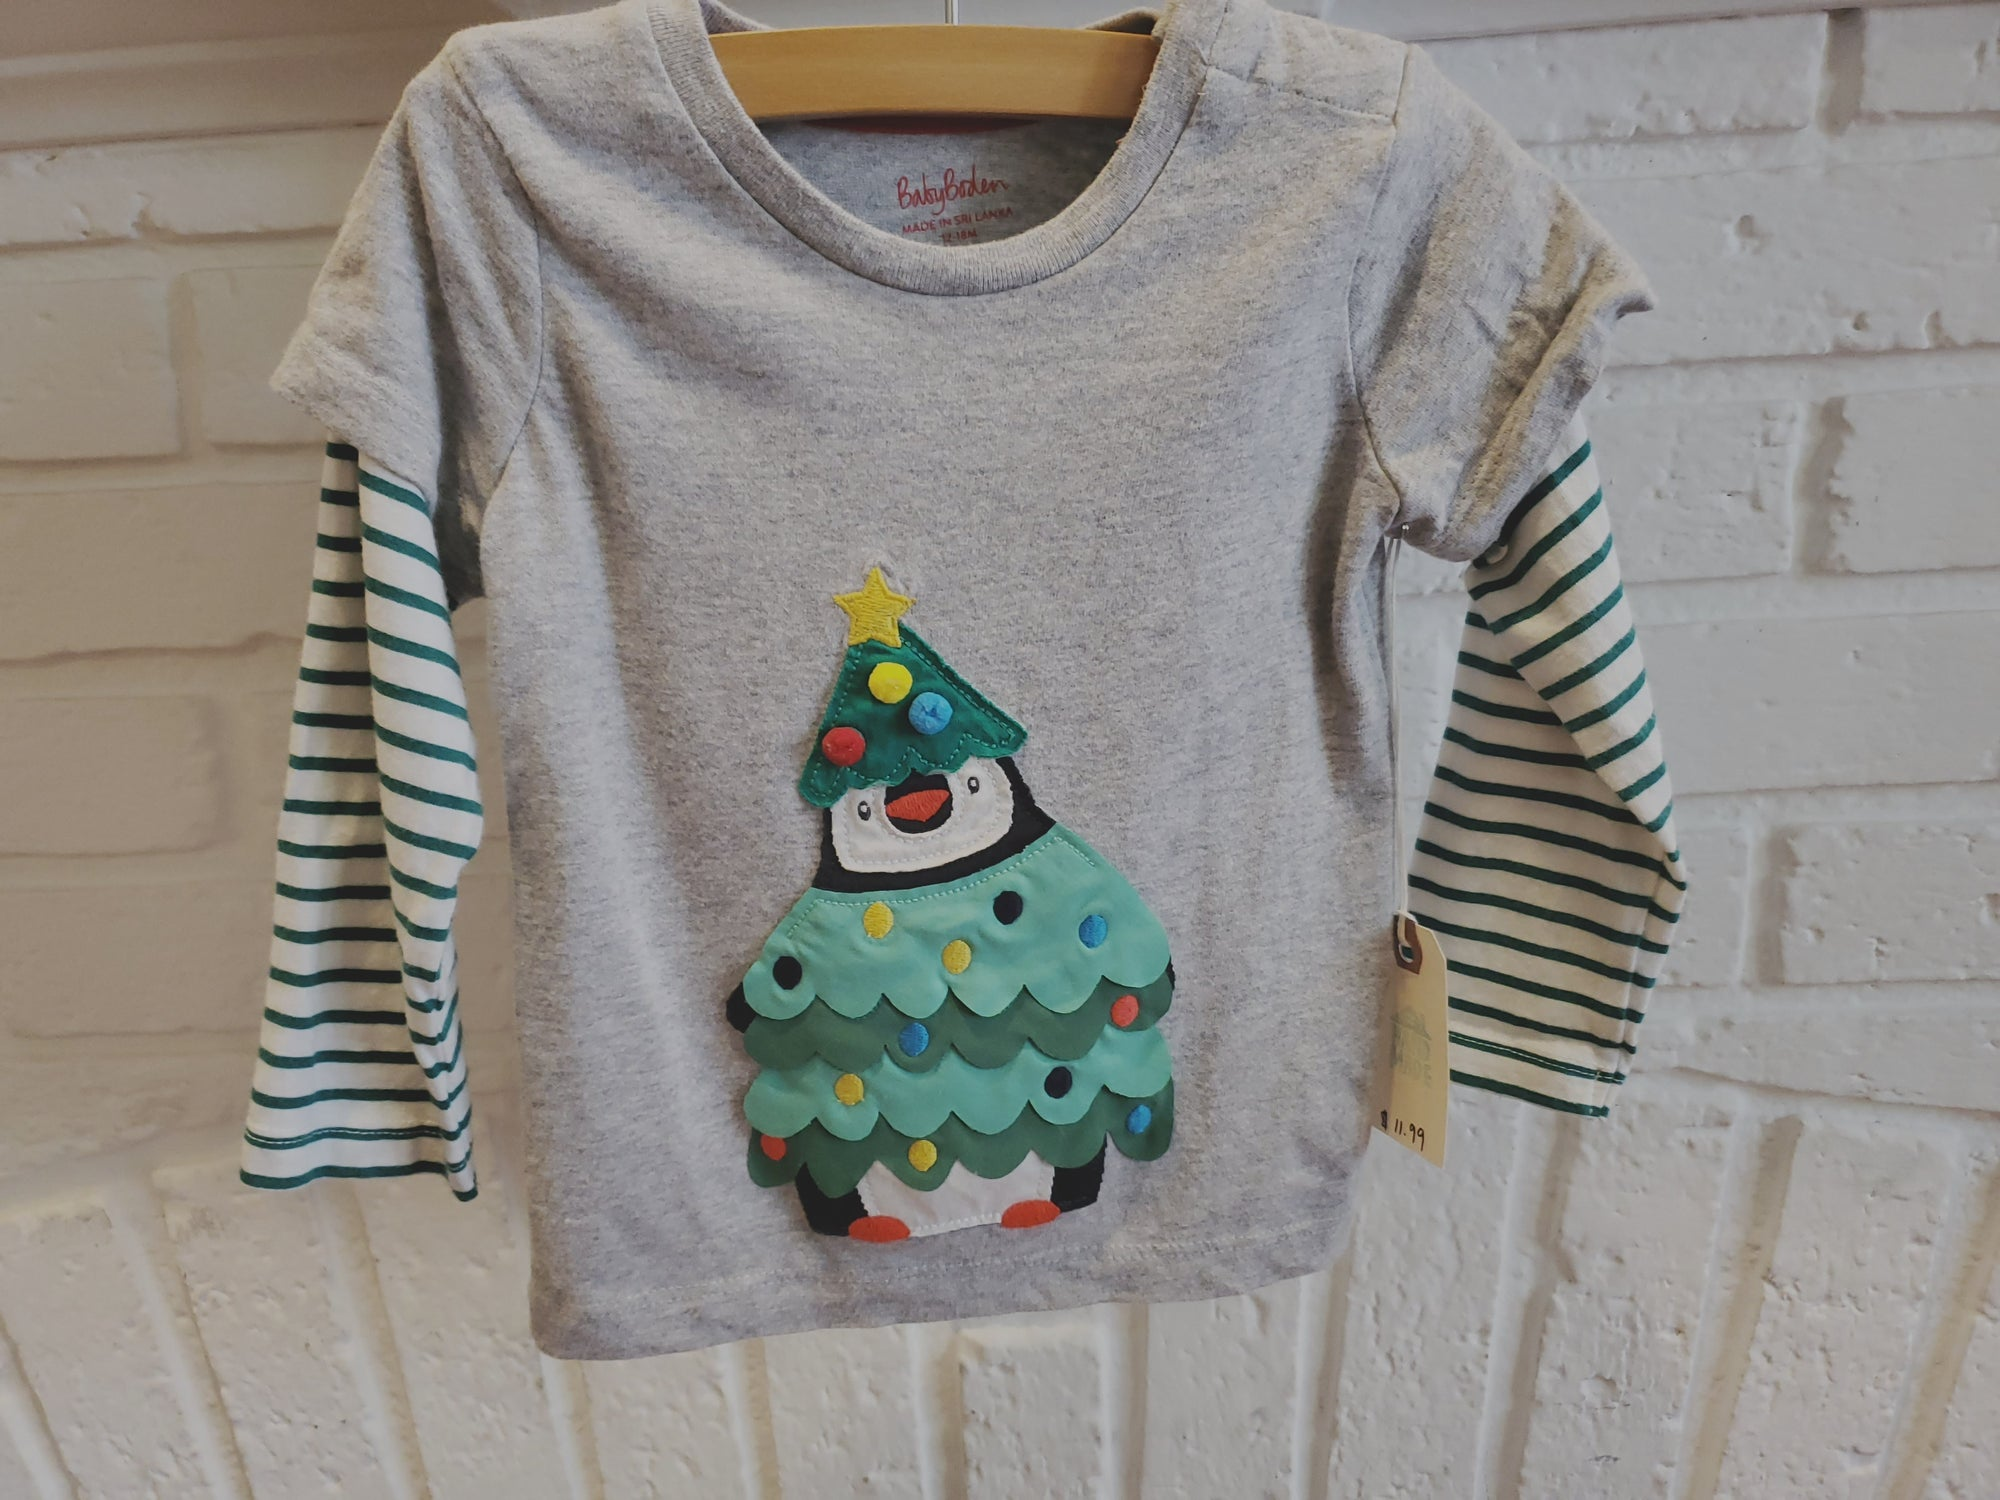 Resale 12-18m Boden Penguin Christmas Tree Shirt